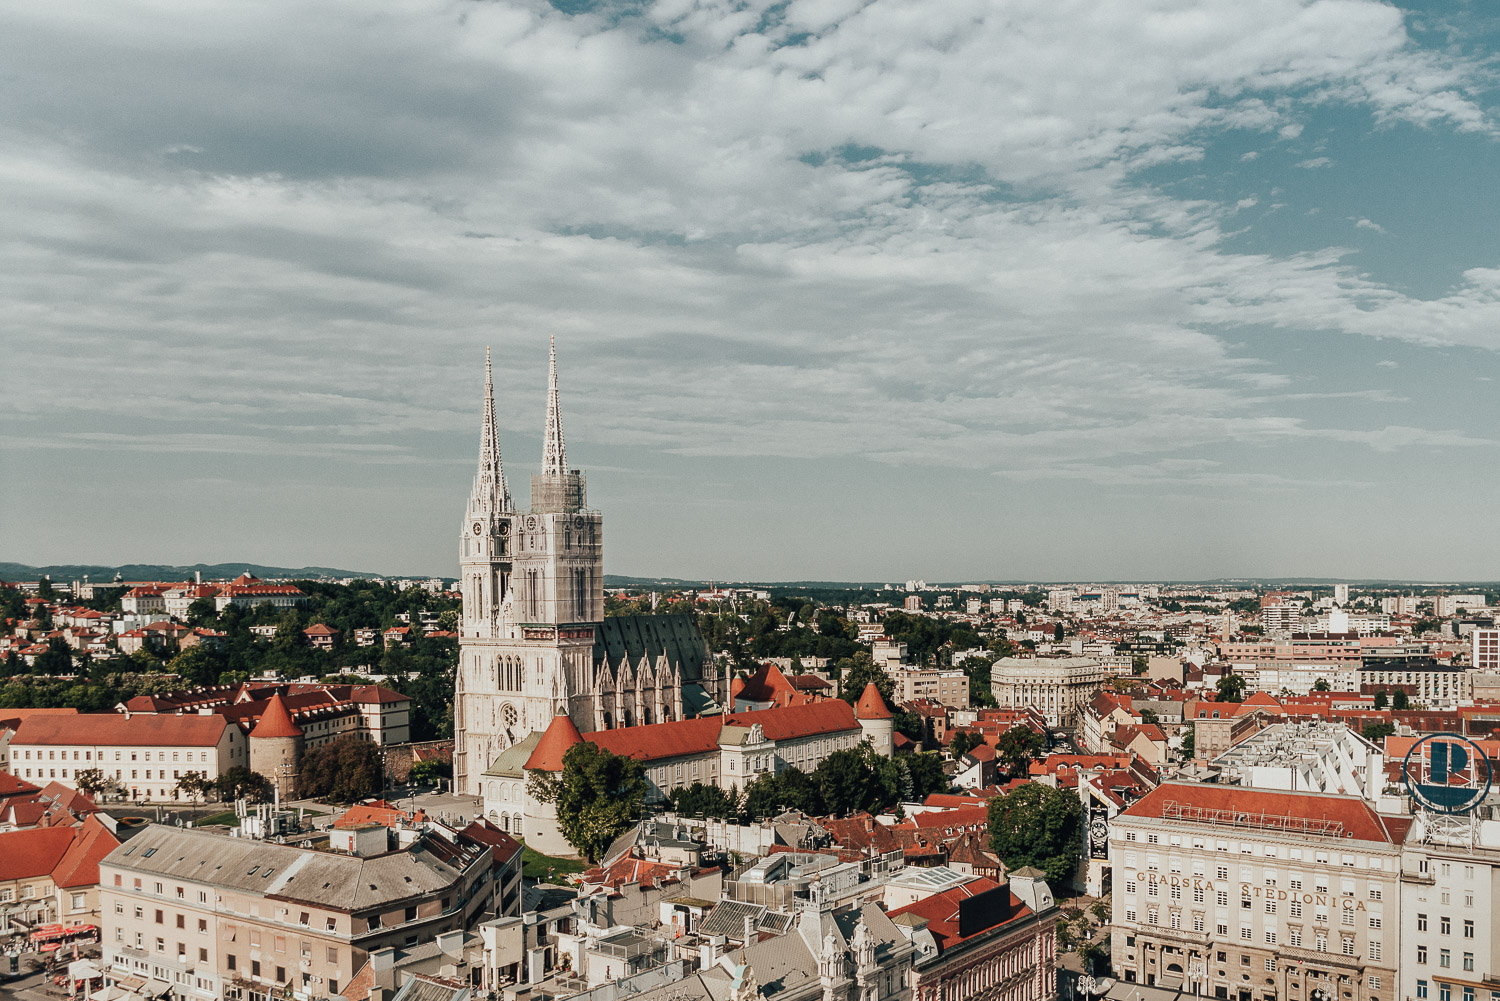 Zagreb 360 - Zagreb Eye Observation Deck